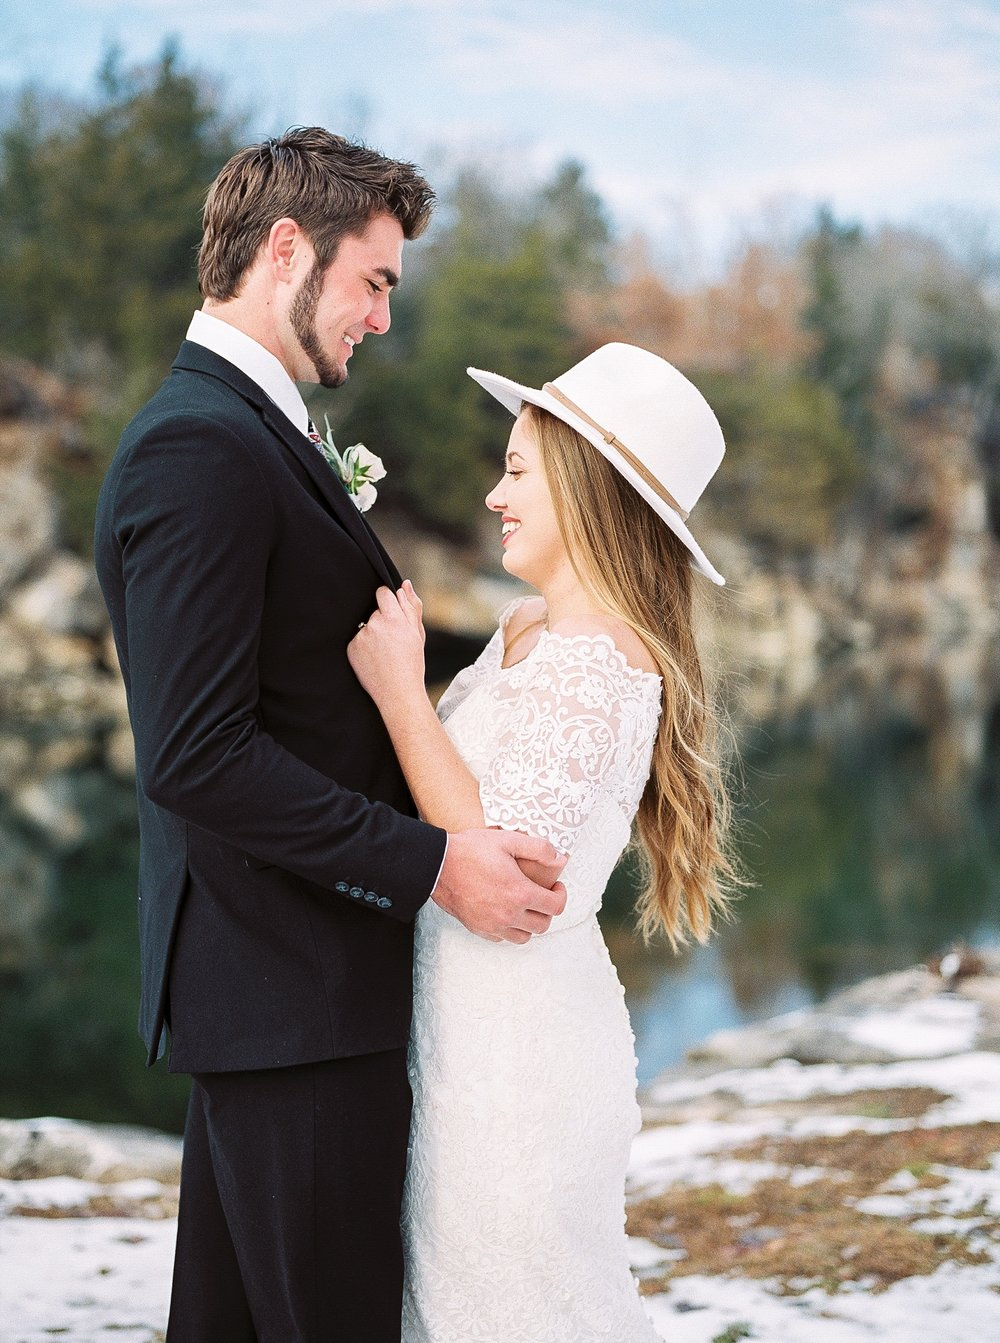 Snowy Winter Wedding at Wildcliff Events Lake With Earthy Jewel Tones and Organic Refined Style by Kelsi Kliethermes Photography Kansas City Missouri Wedding Photographer_0106.jpg